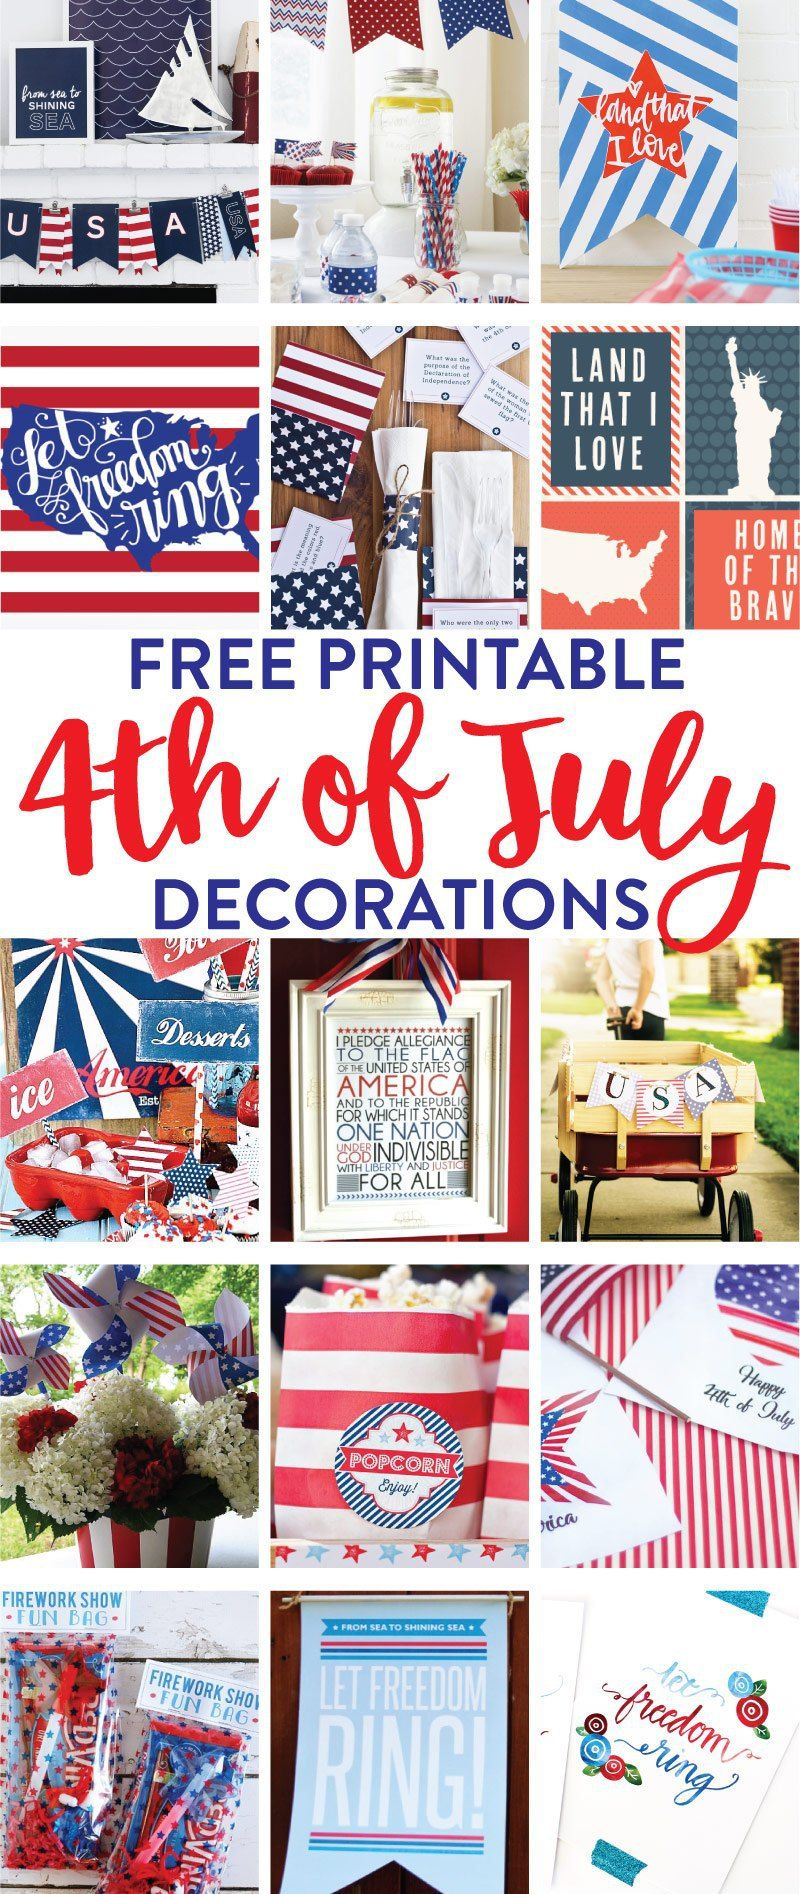 15 Free Printable 4th of July Decorations on   Pinterest ...